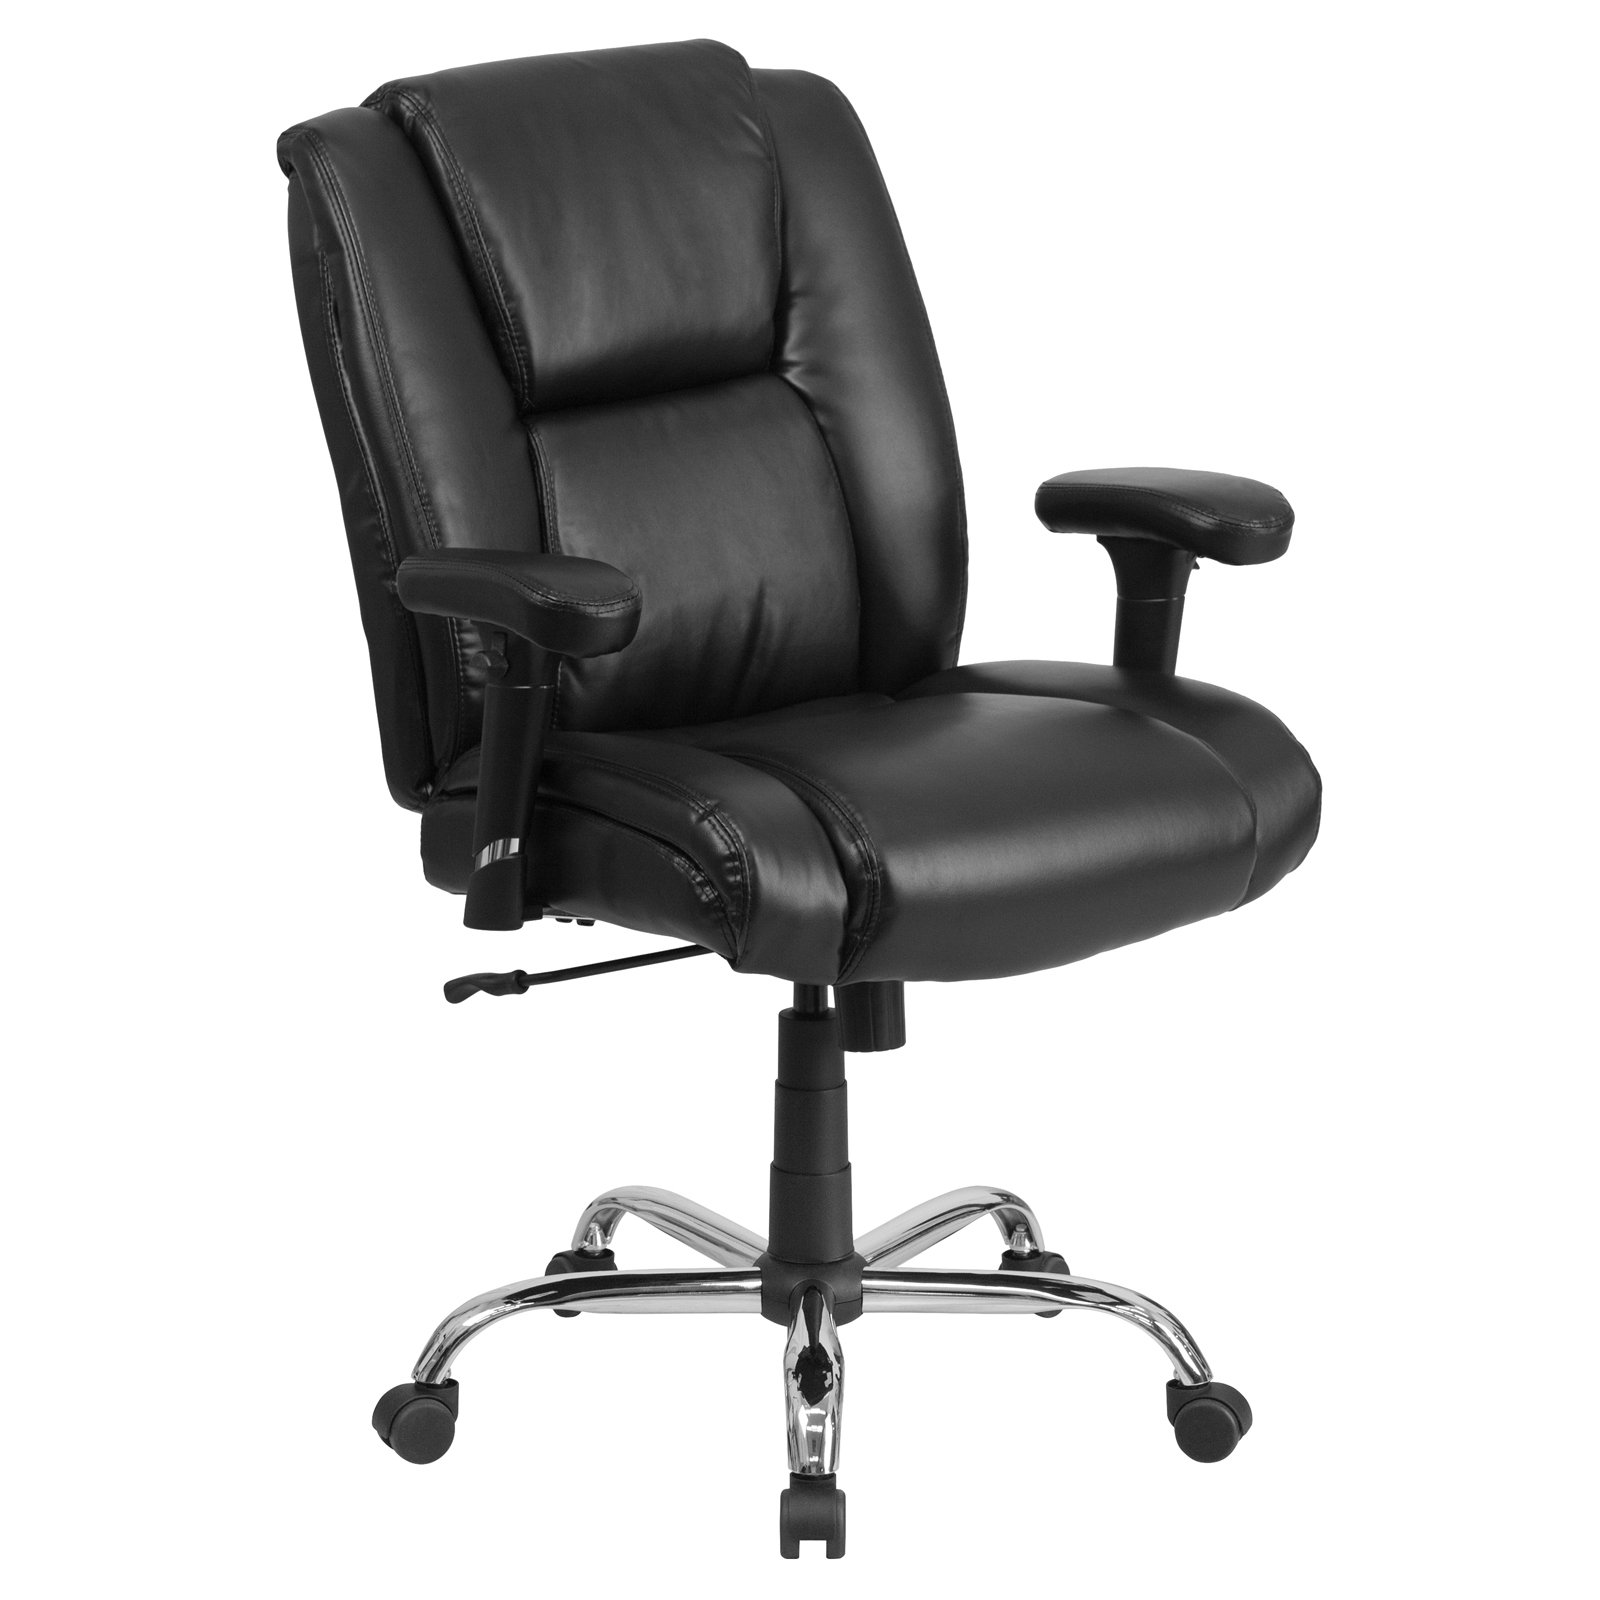 Flash Furniture HERCULES Series 400-Pound Capacity Big & Tall Black Leather Swivel Task Office Chair with Height Adjustable Arms